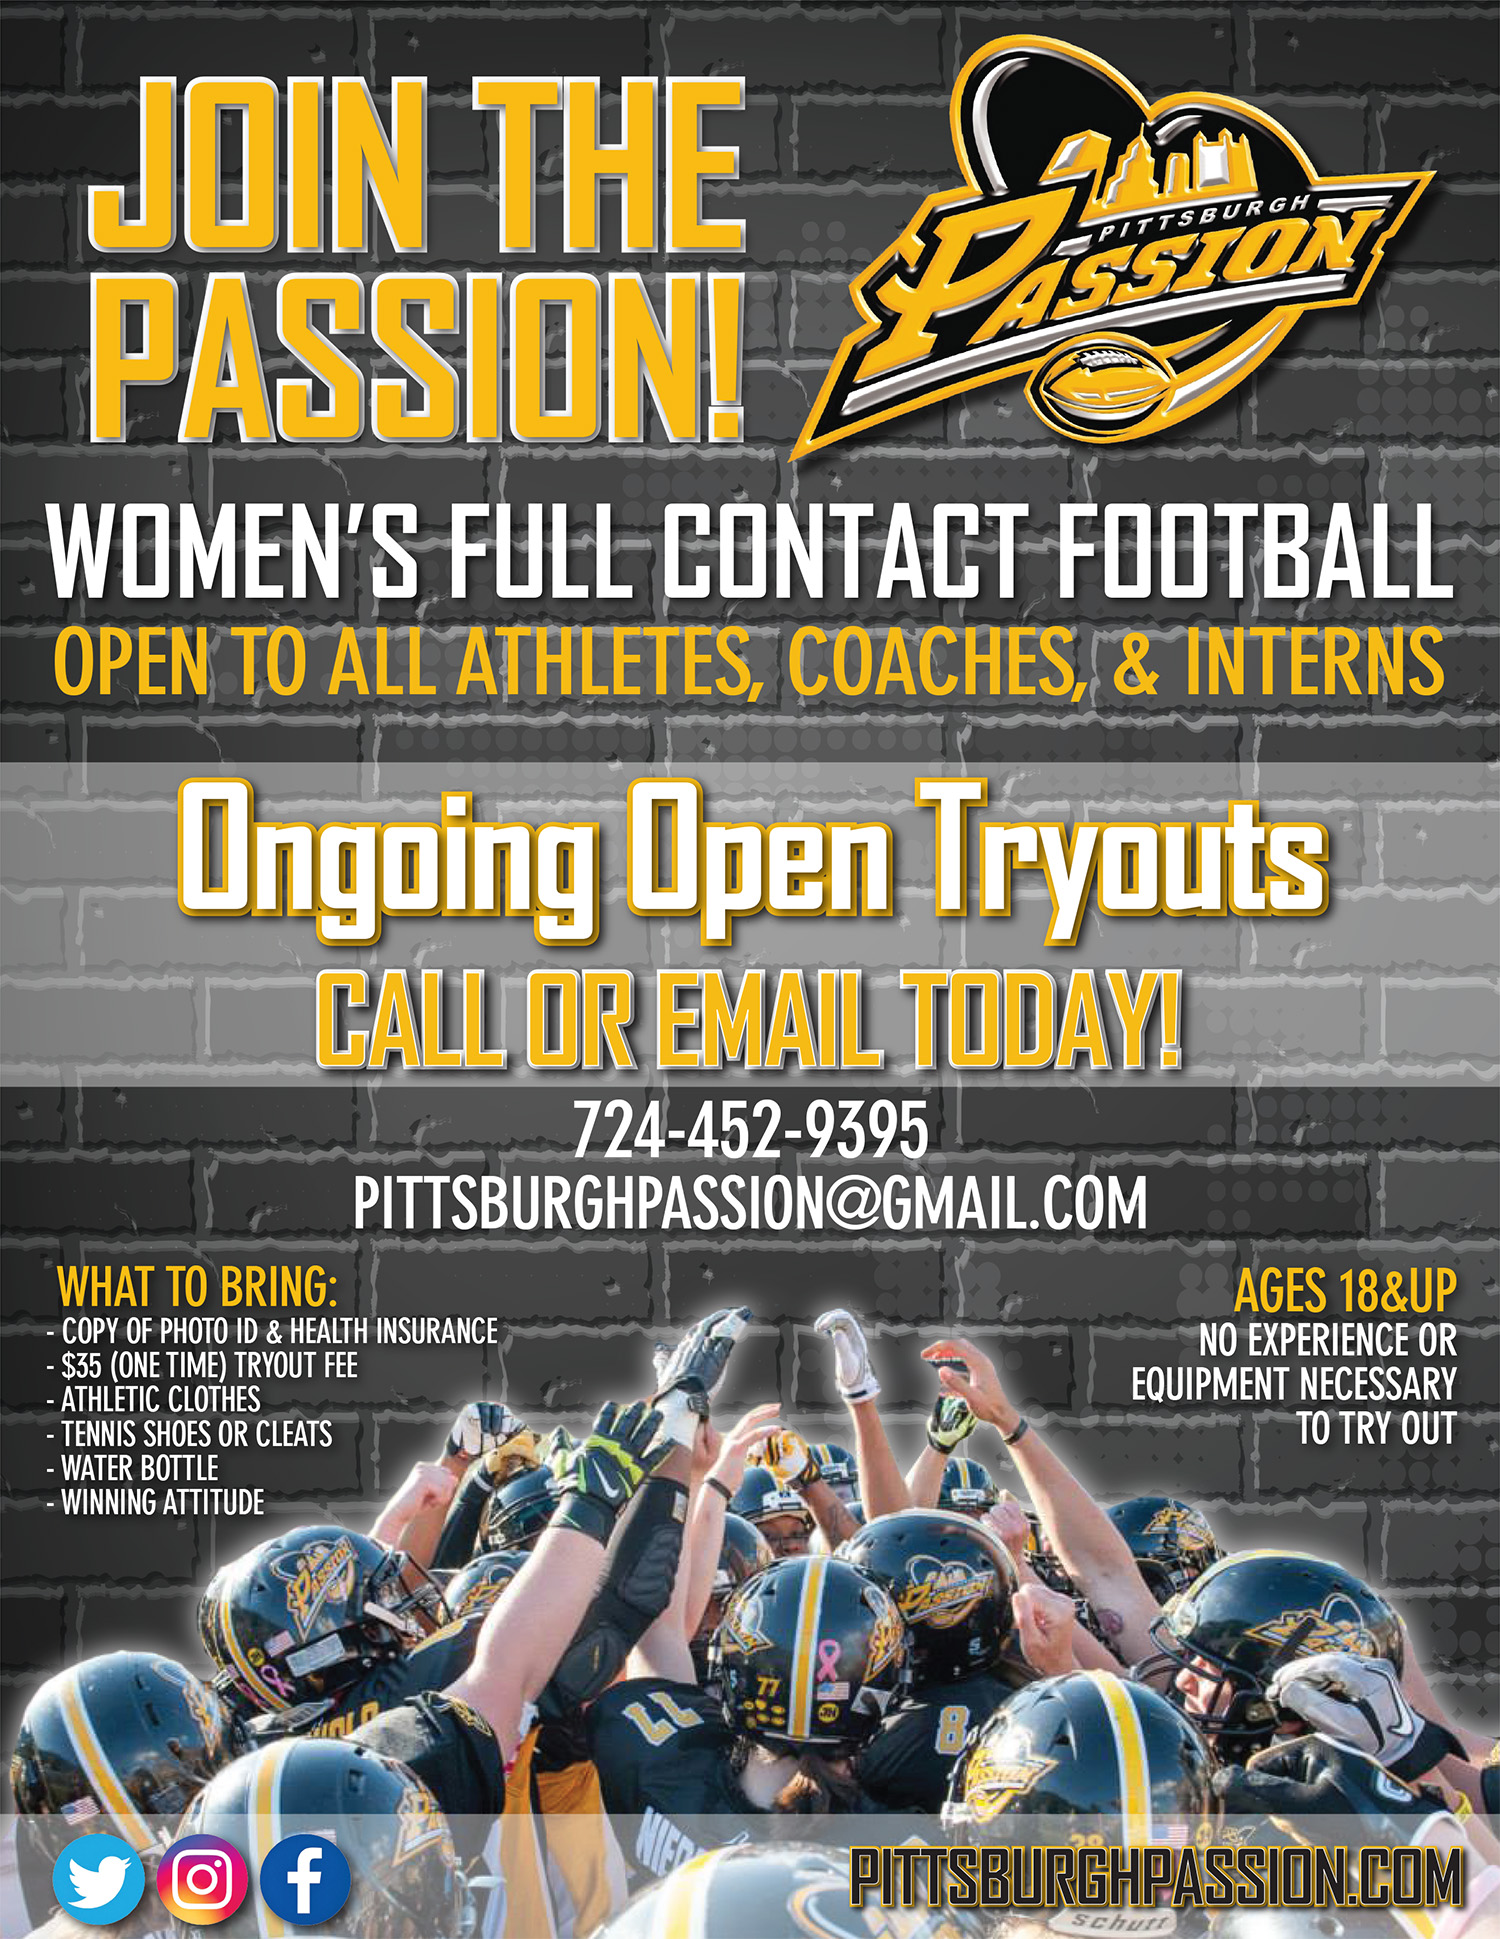 2018 Passion Open Tryouts flyer_final